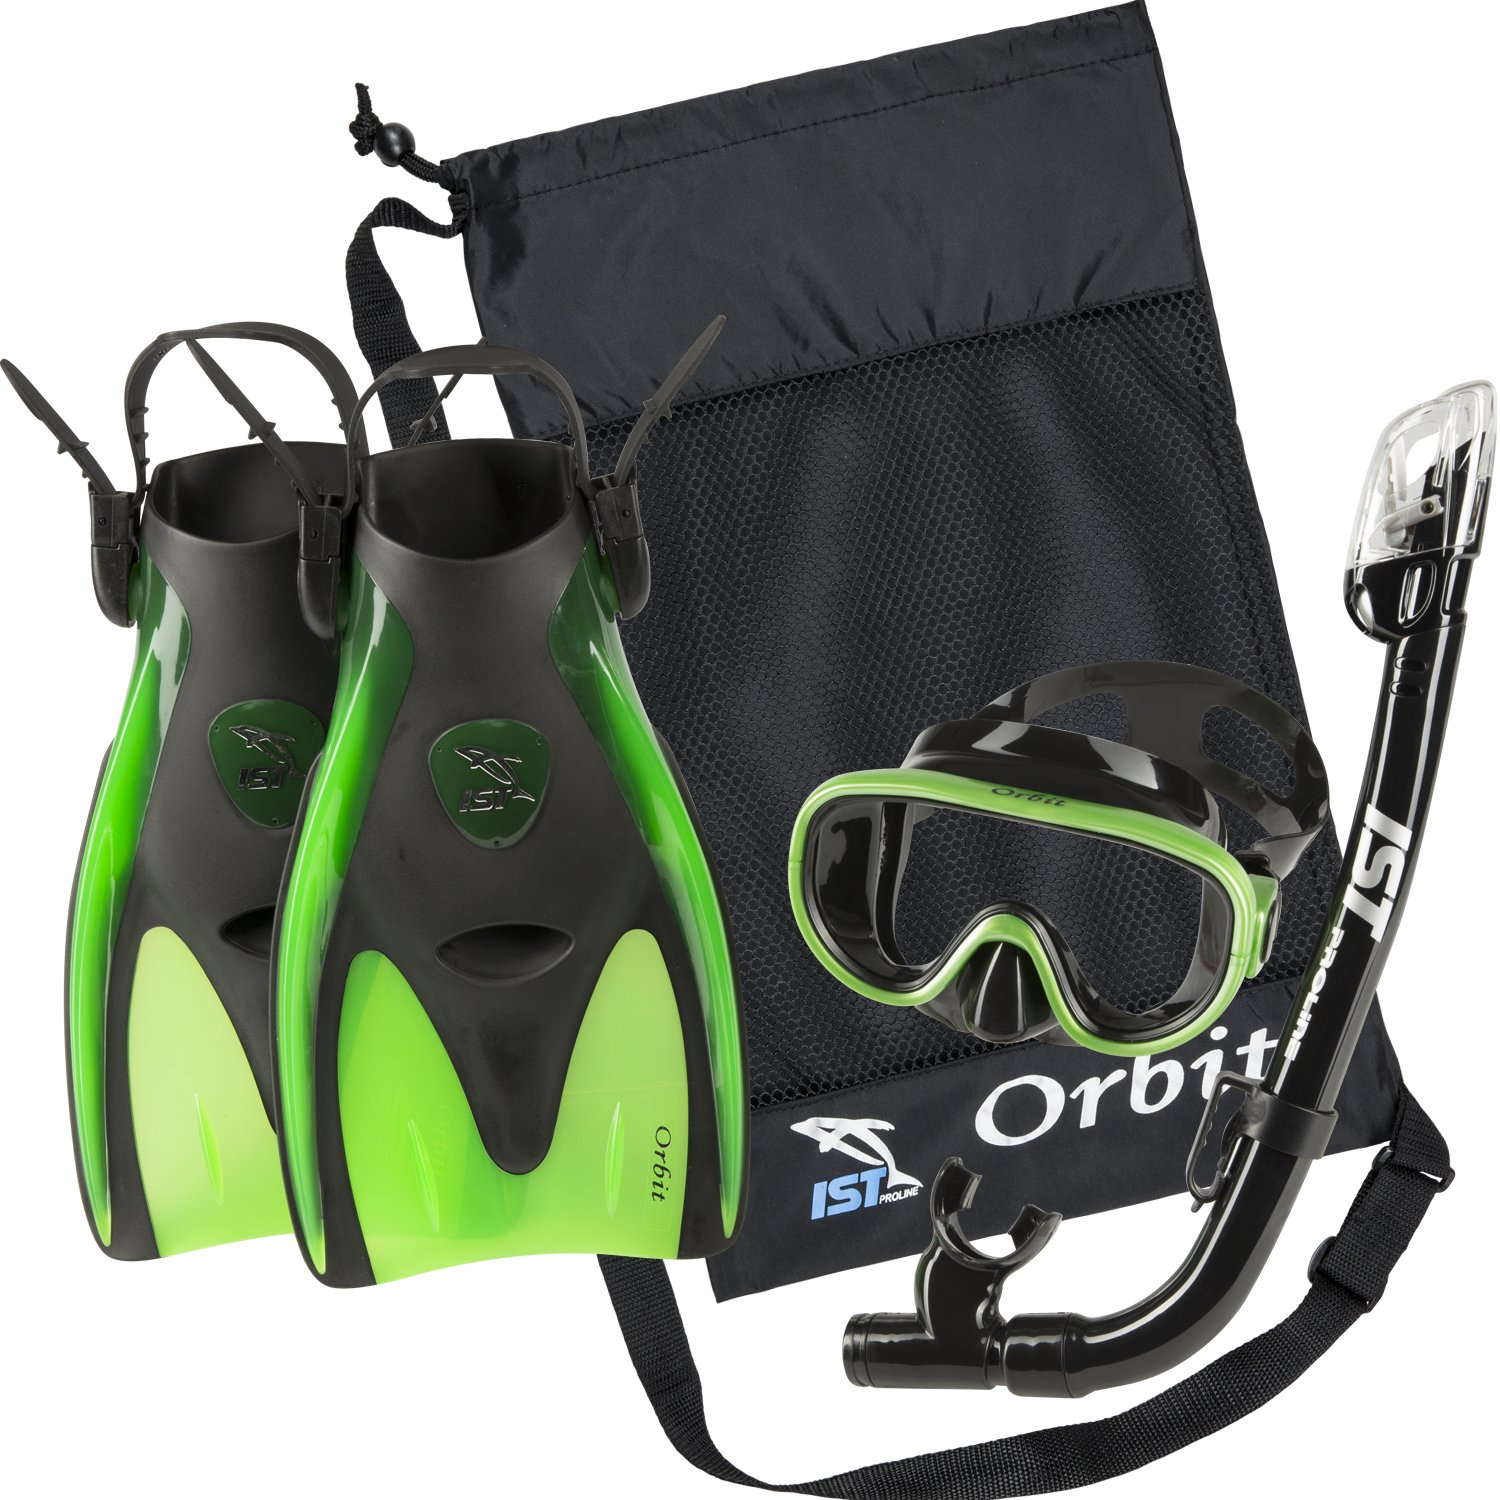 IST Orbit Snorkeling Gear Set: Tempered Glass Mask, Dry Top Snorkel & Trek Fins for Compact Travel (Black Silicone/Green, Large) by IST